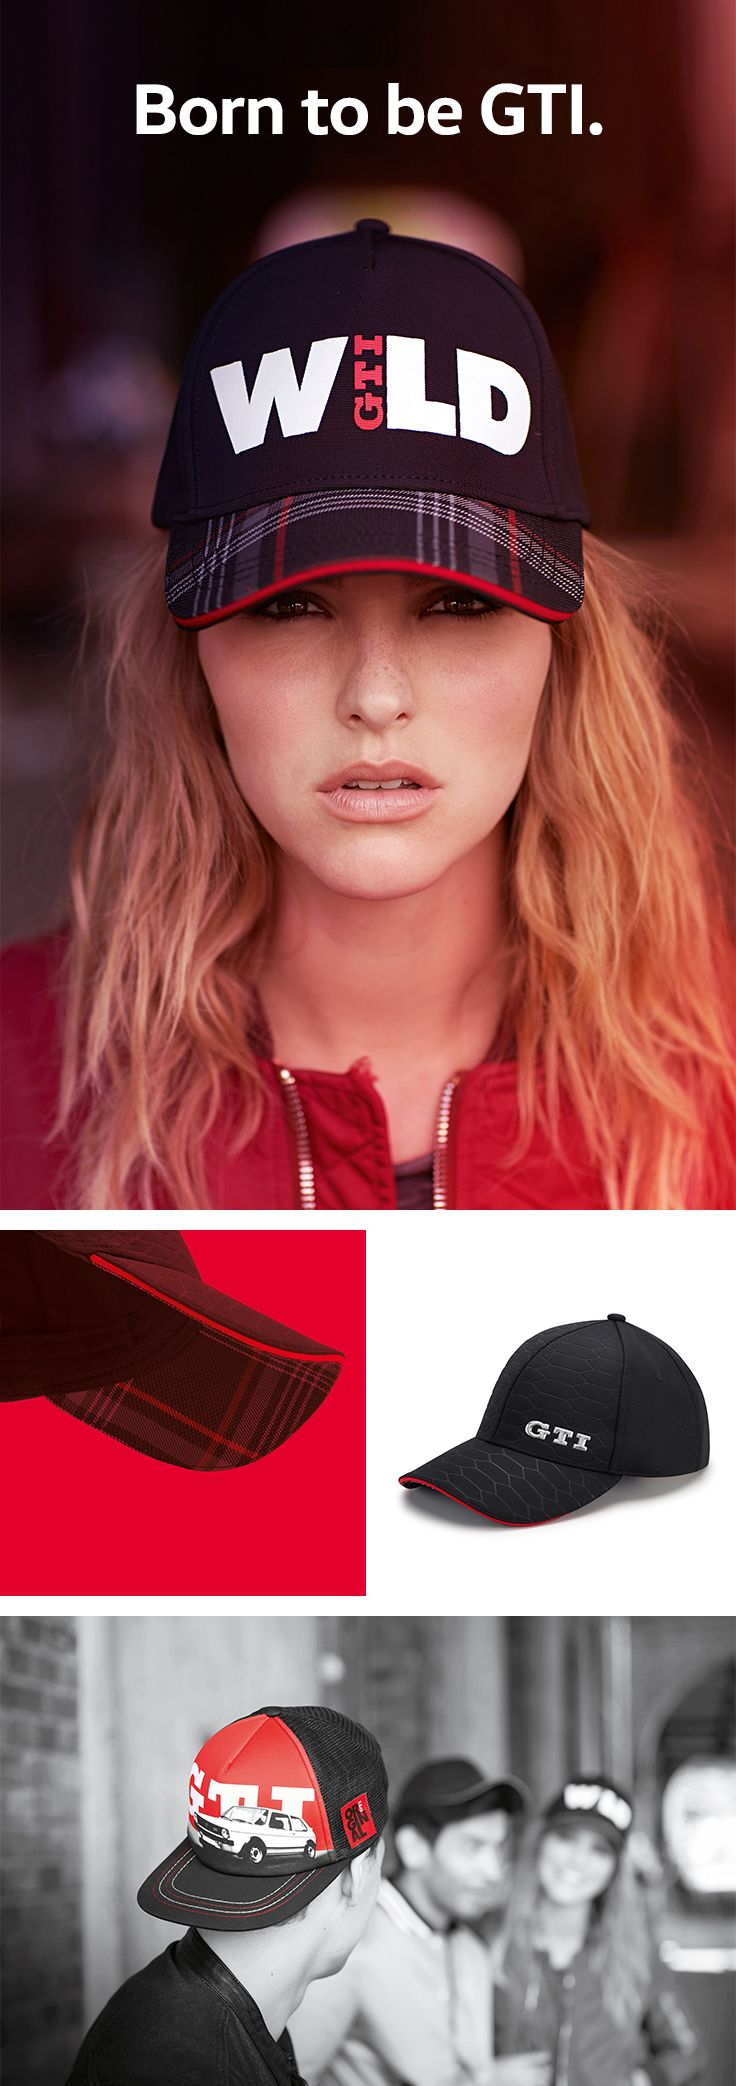 GTI is a synonym for passion and a dynamic lifestyle. These stylish GTI baseball caps feature the iconic three letters in different designs. (Shipping within Germany, international purchase via Volkswagen dealership.)